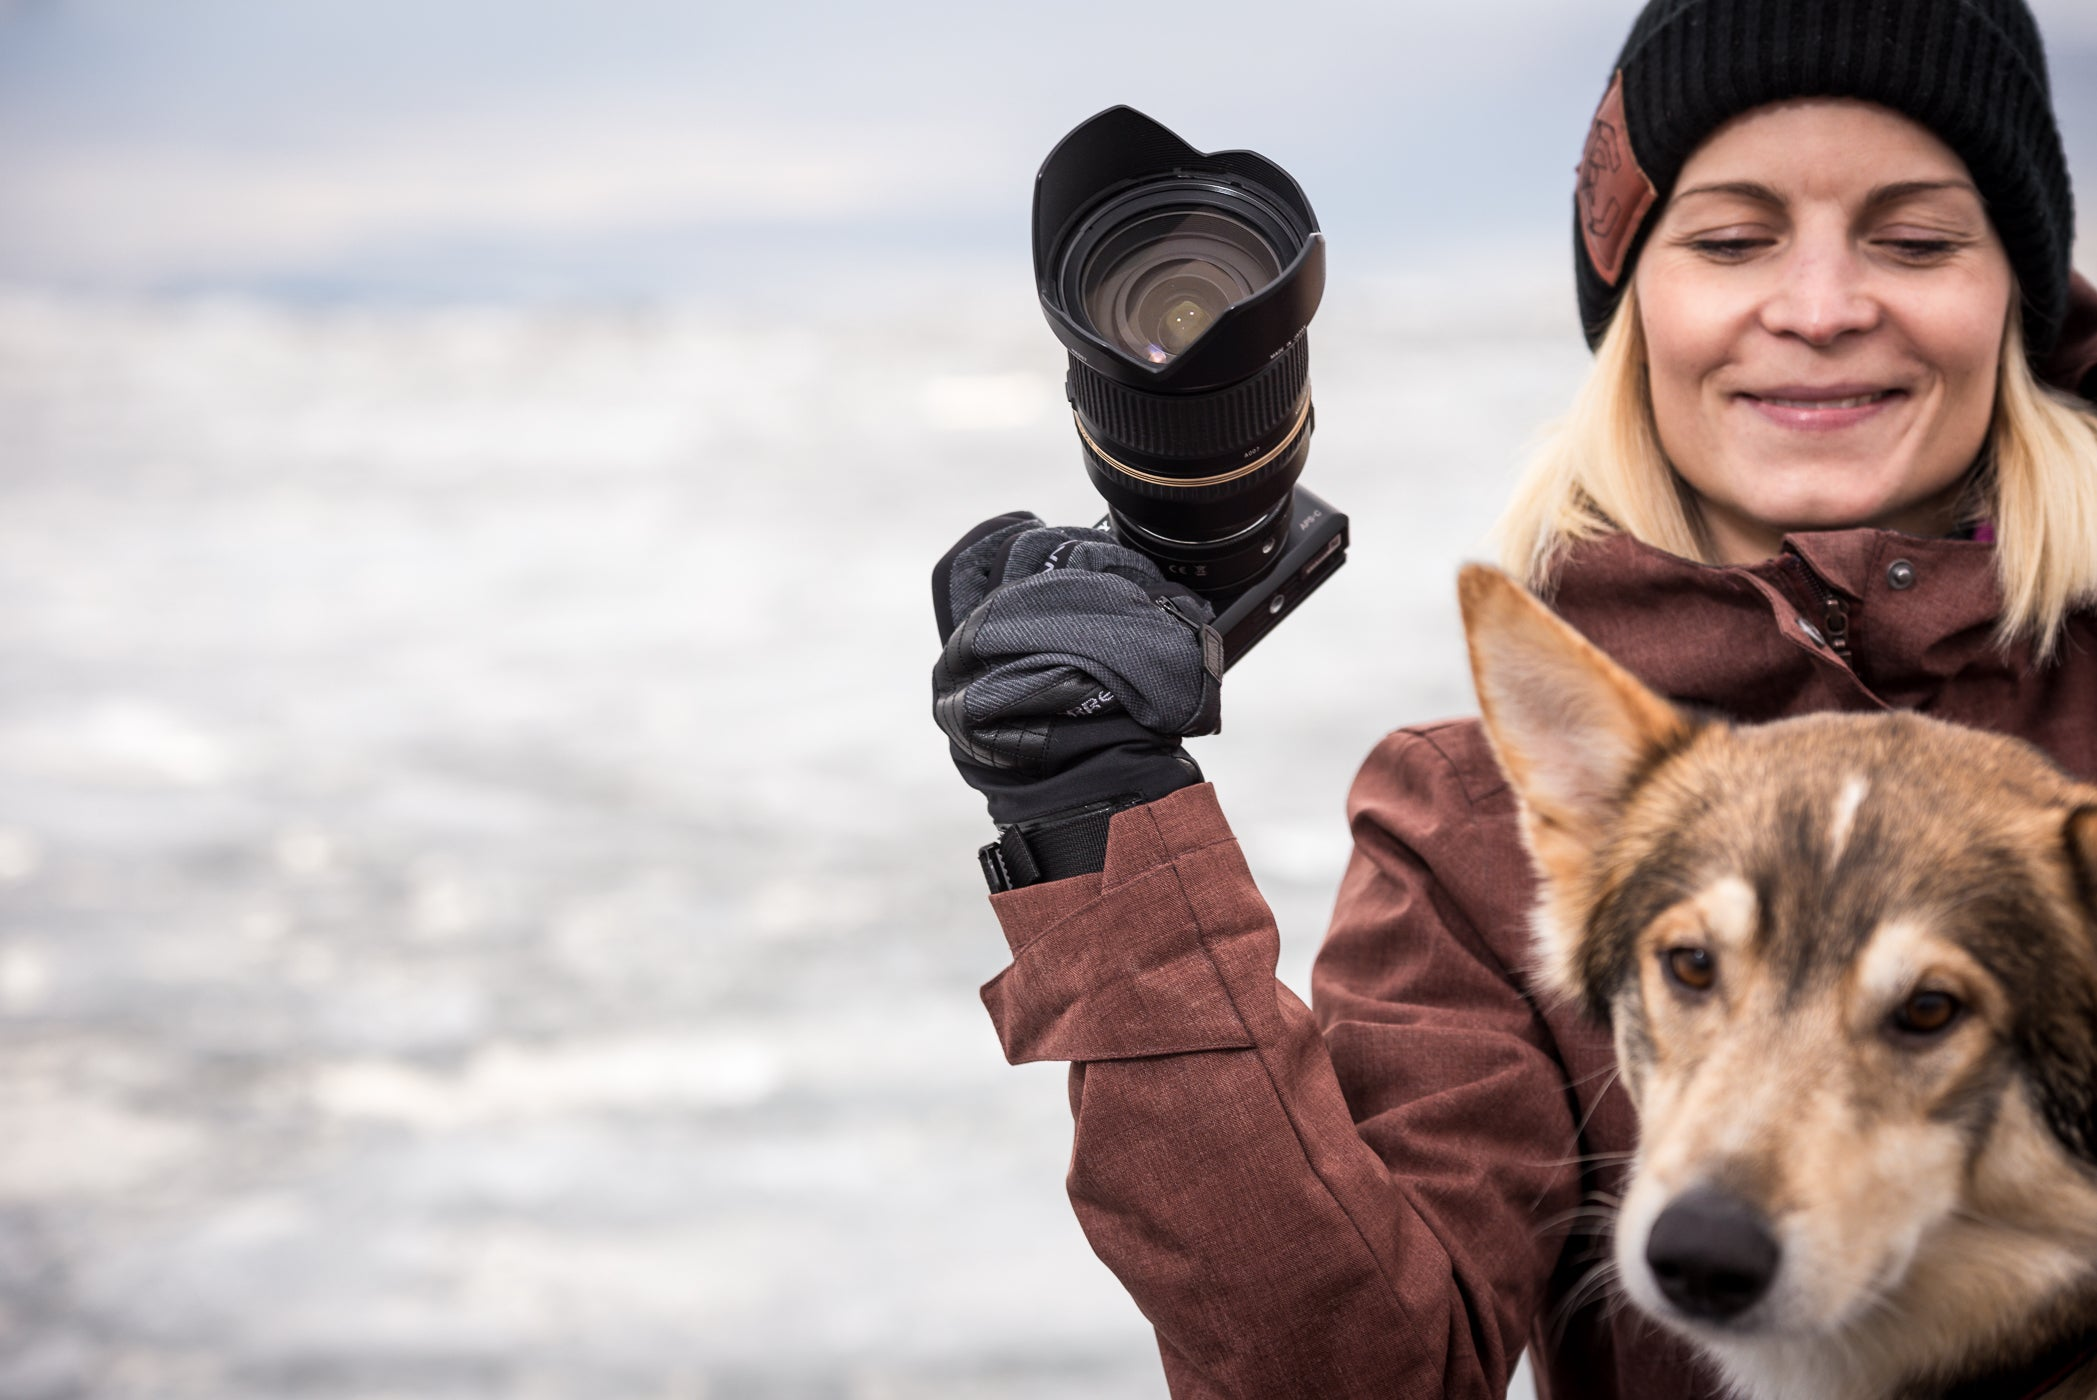 Woman with camera and a dog in the mountains